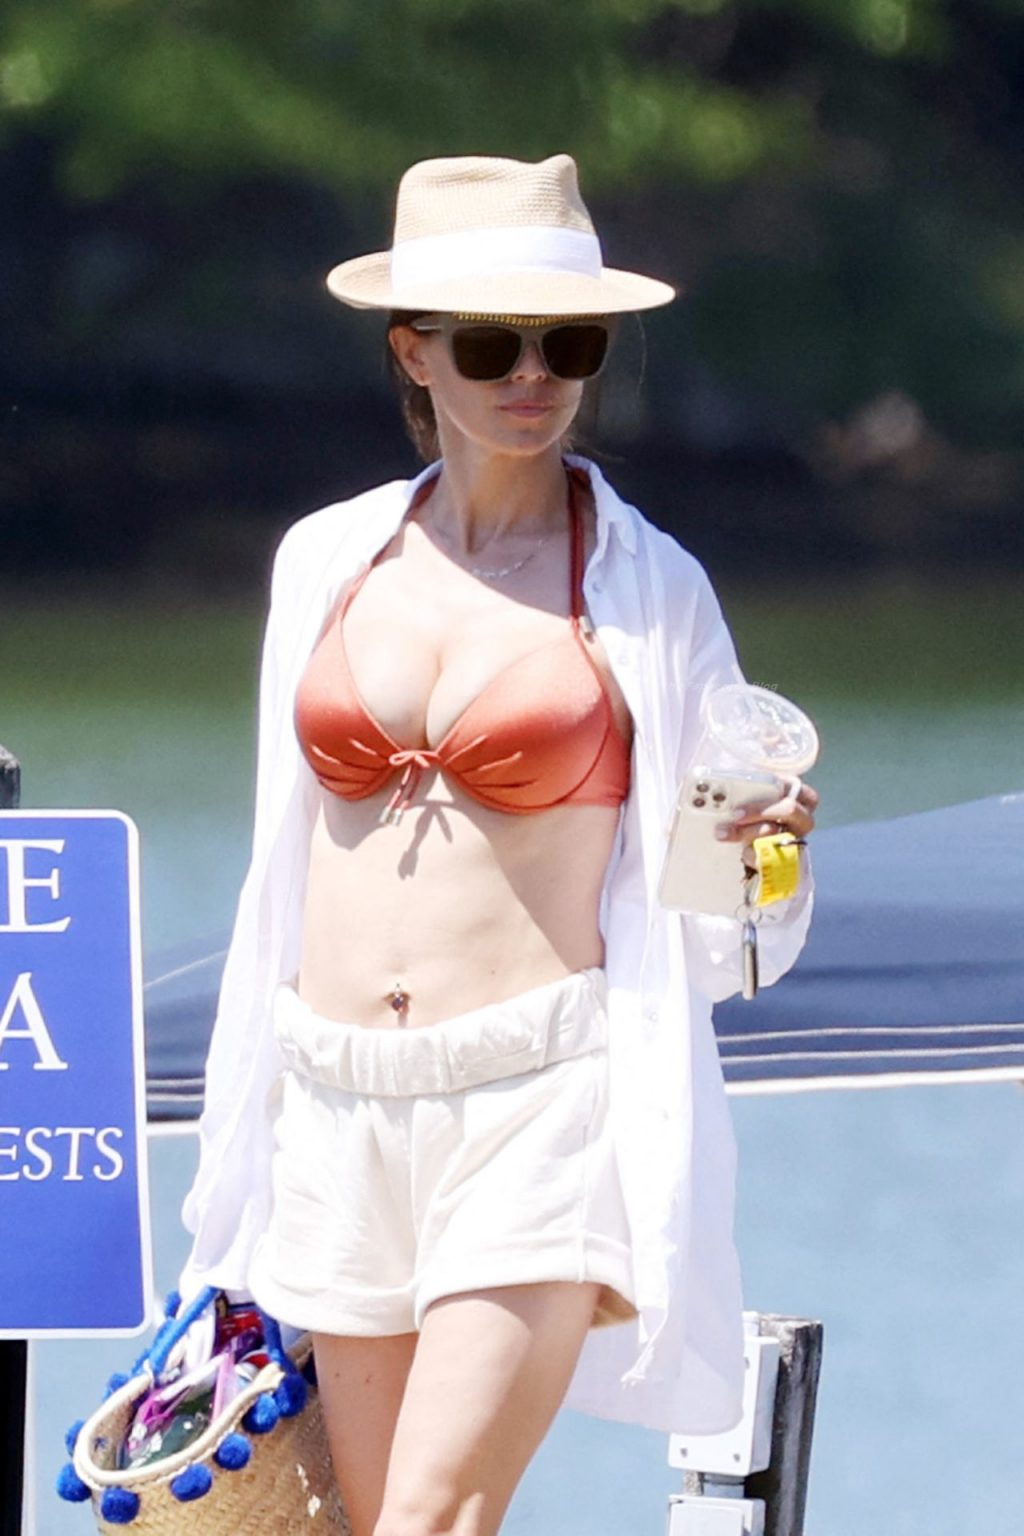 Busty Hilaria Baldwin & Alec Baldwin Are Photographed Spending Time With Their Kids (22 Photos)